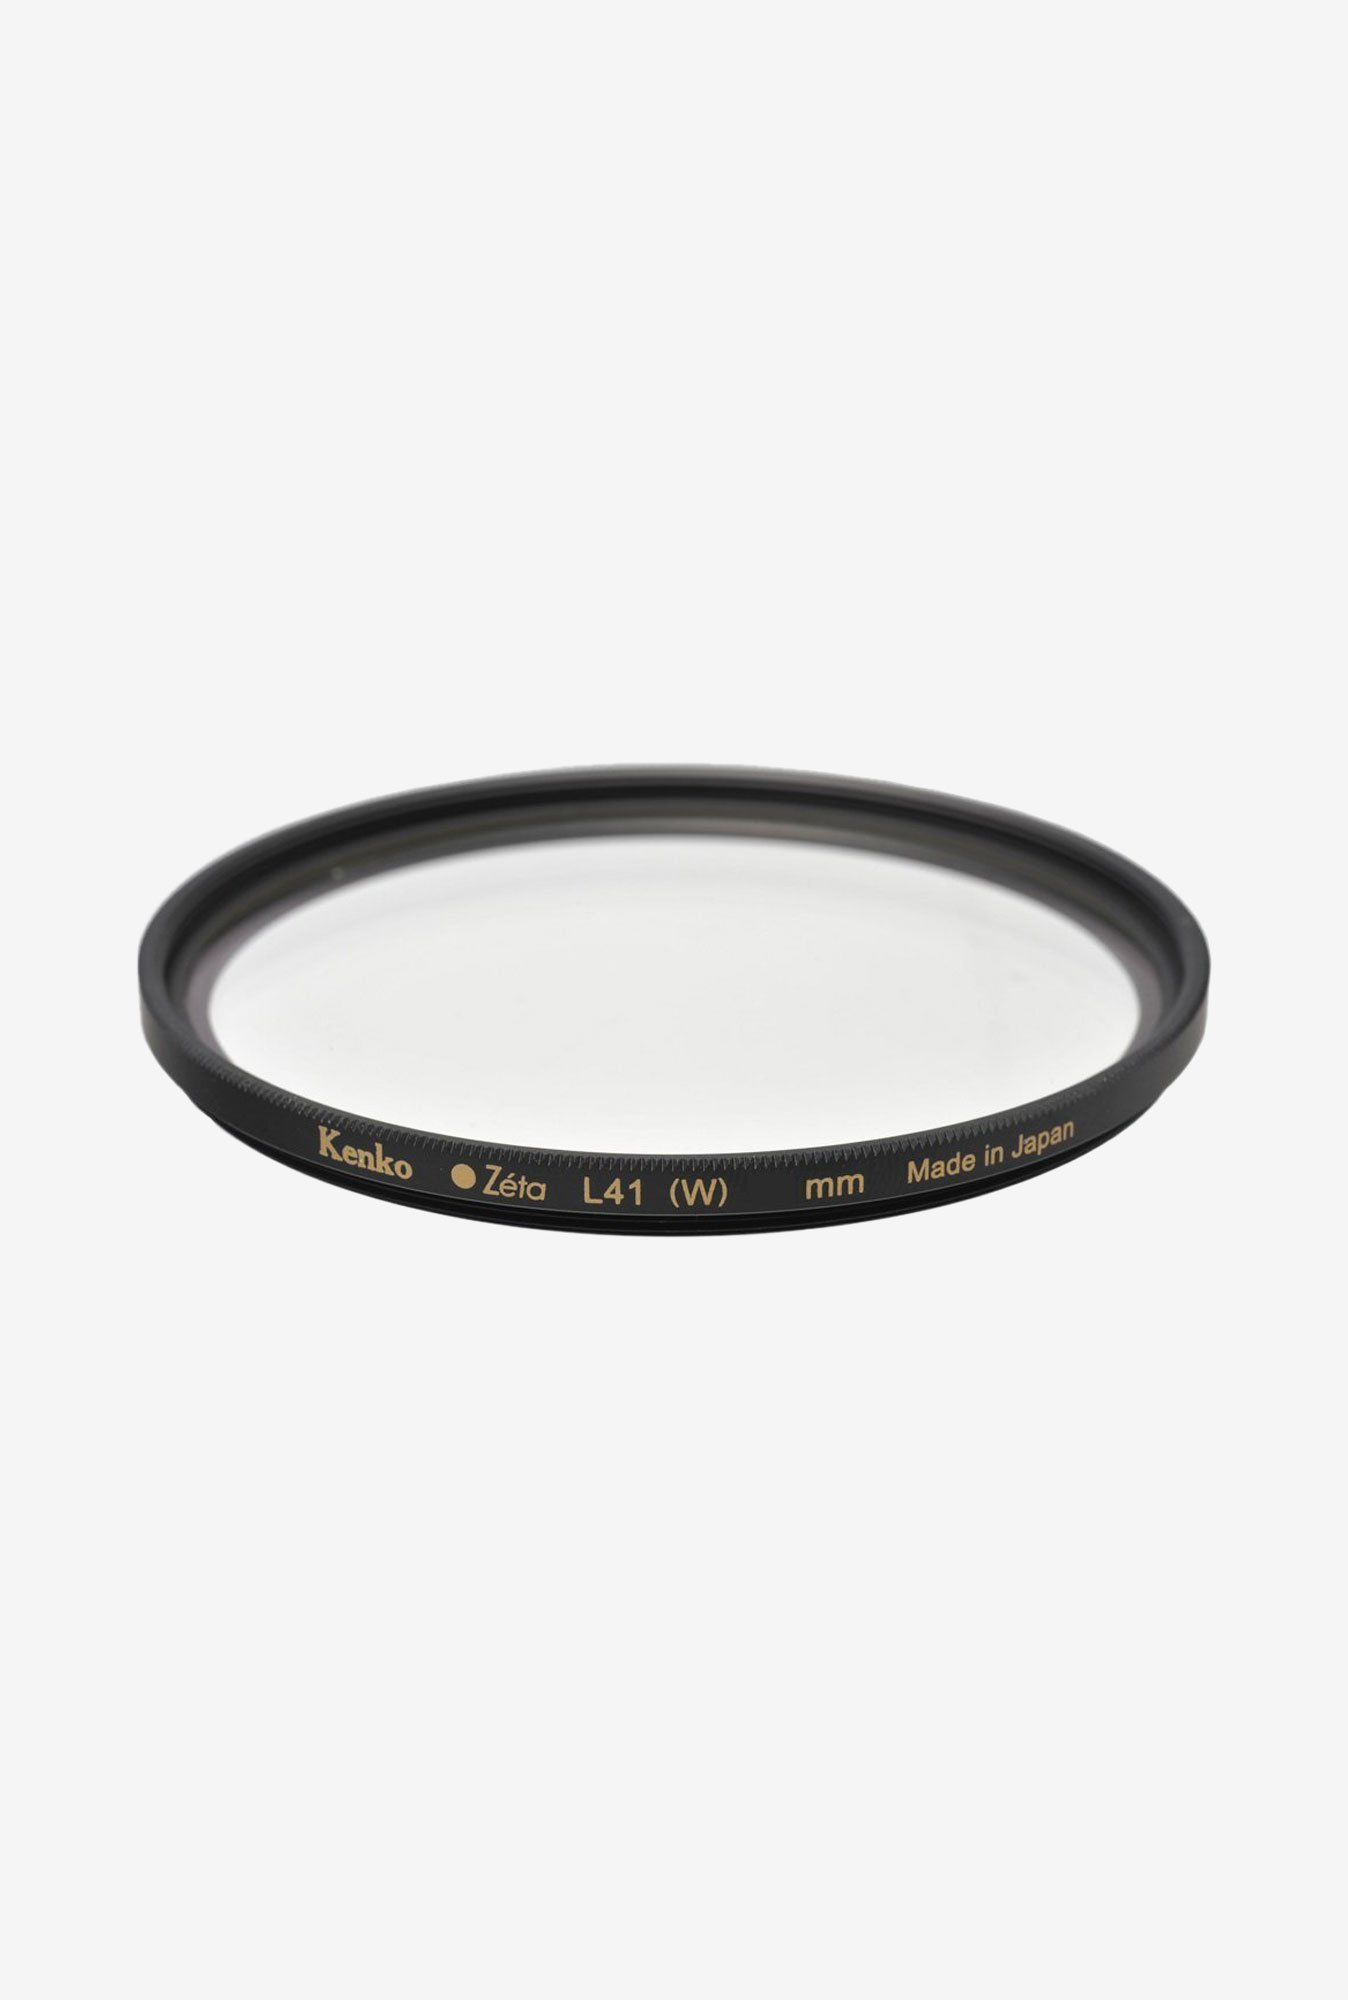 Kenko 67mm Zeta L41 Uv Zr Coated Camera Lens Filter (Black)